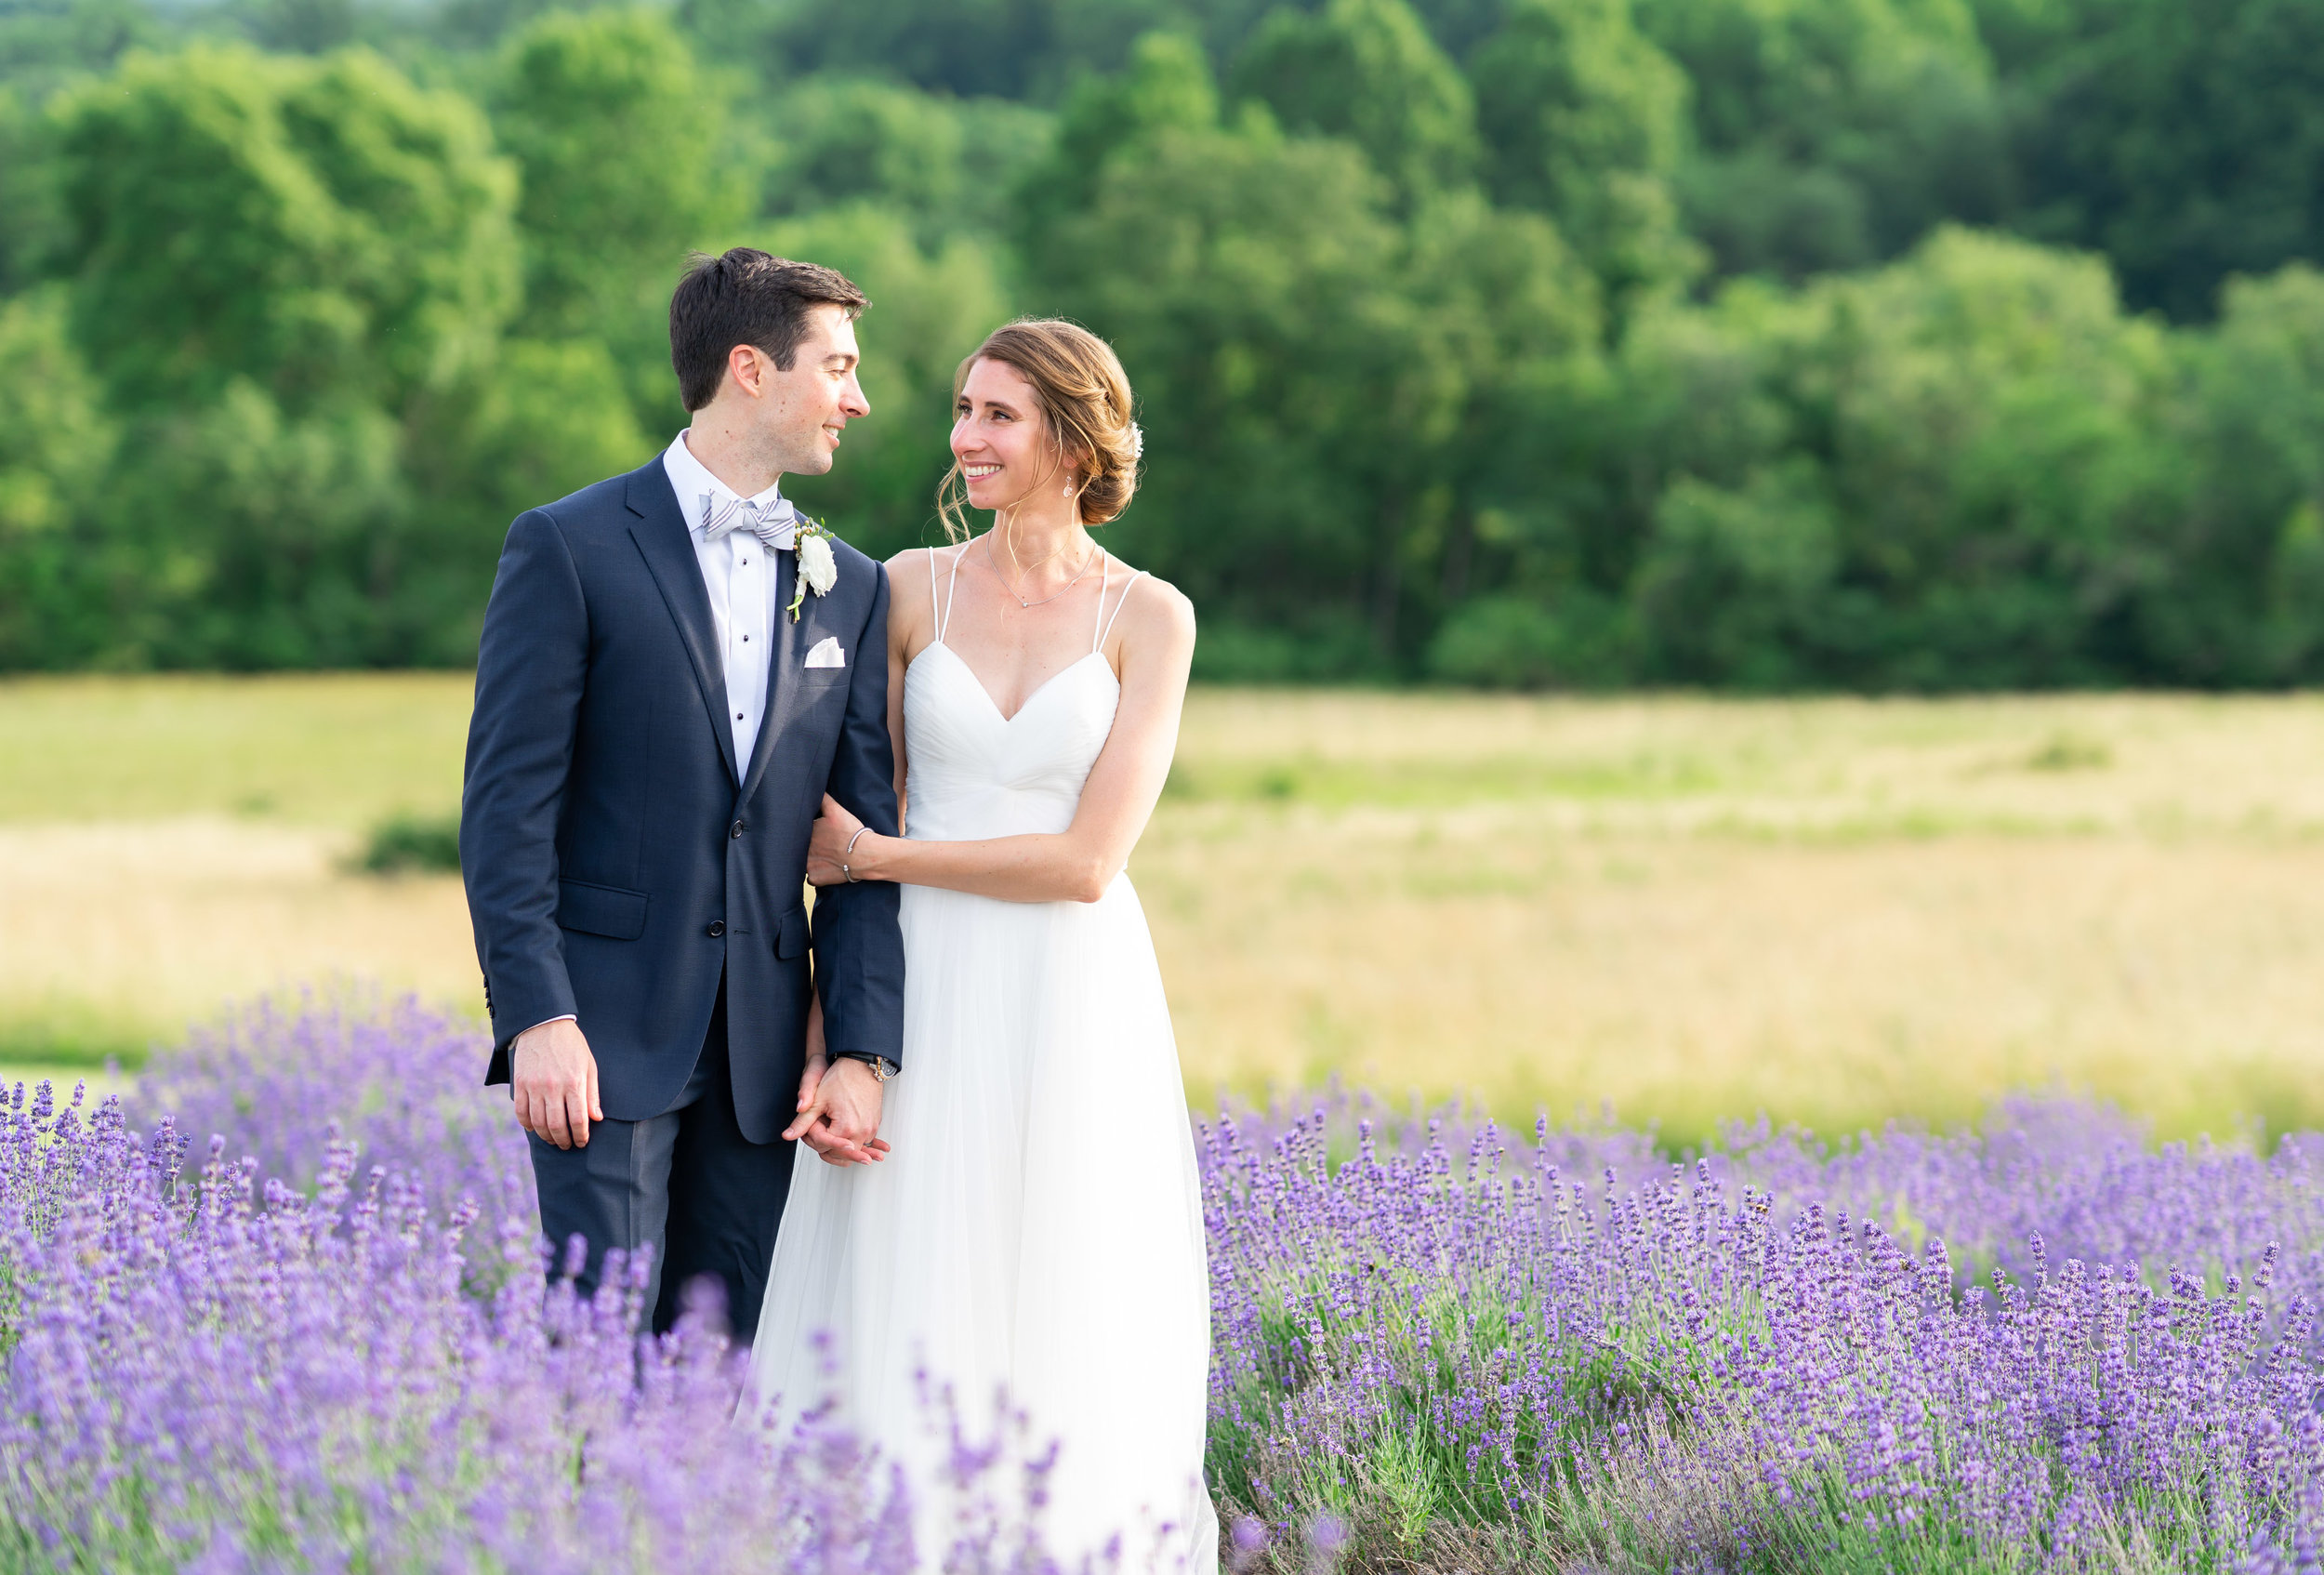 Bride and groom portraits during lavender festival at Springfield manor winery and distillery